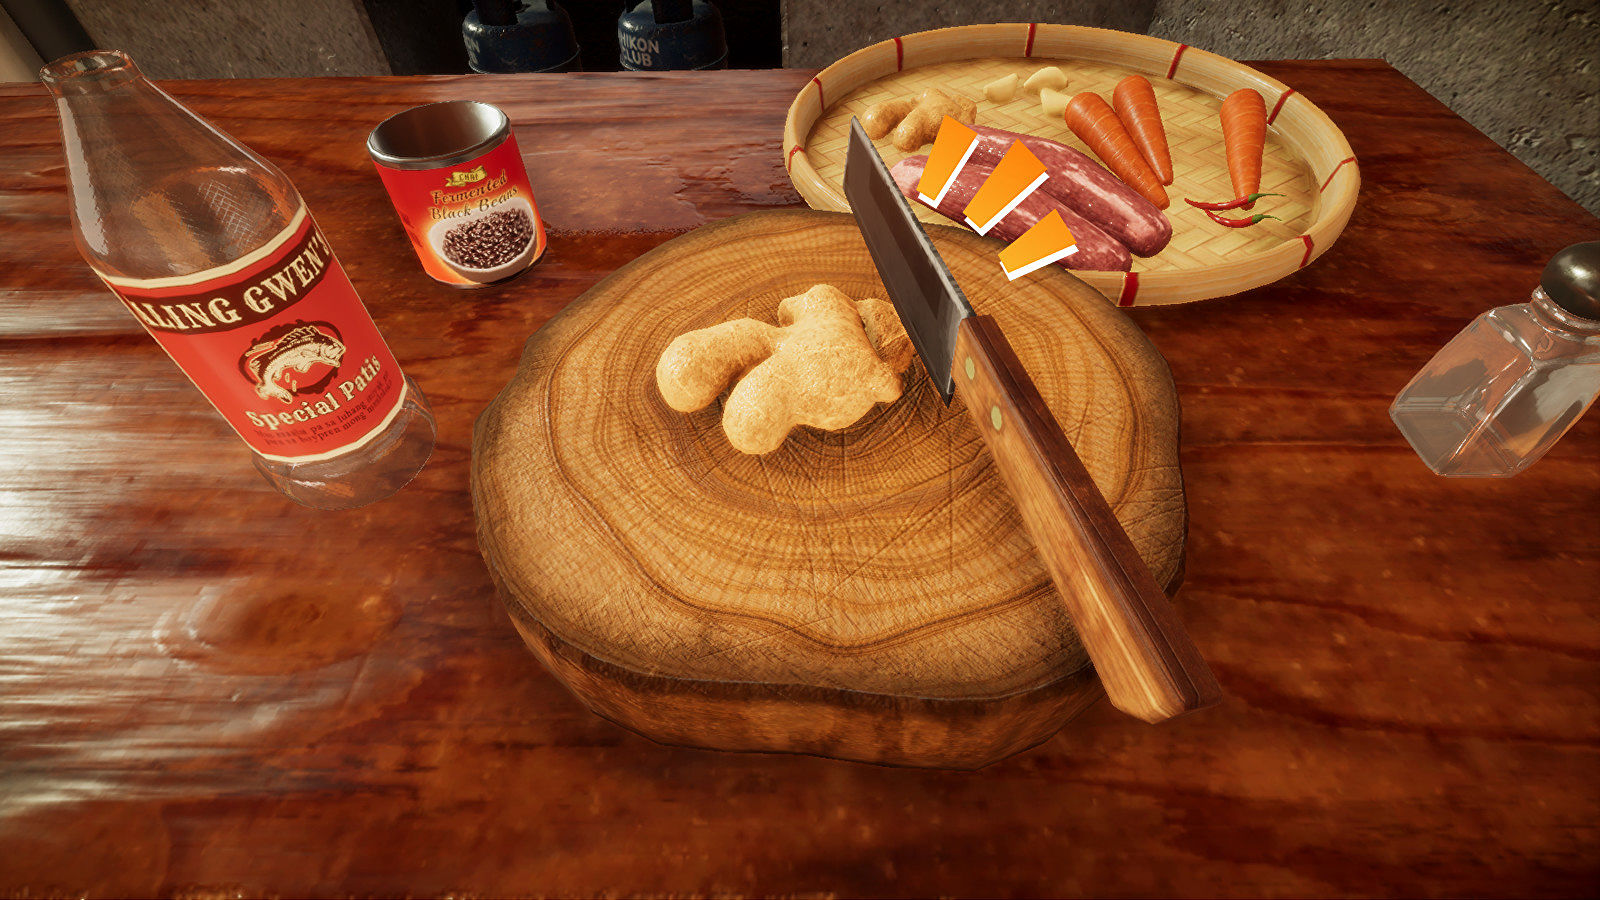 Soup Pot is a cute-looking cooking game about creativity